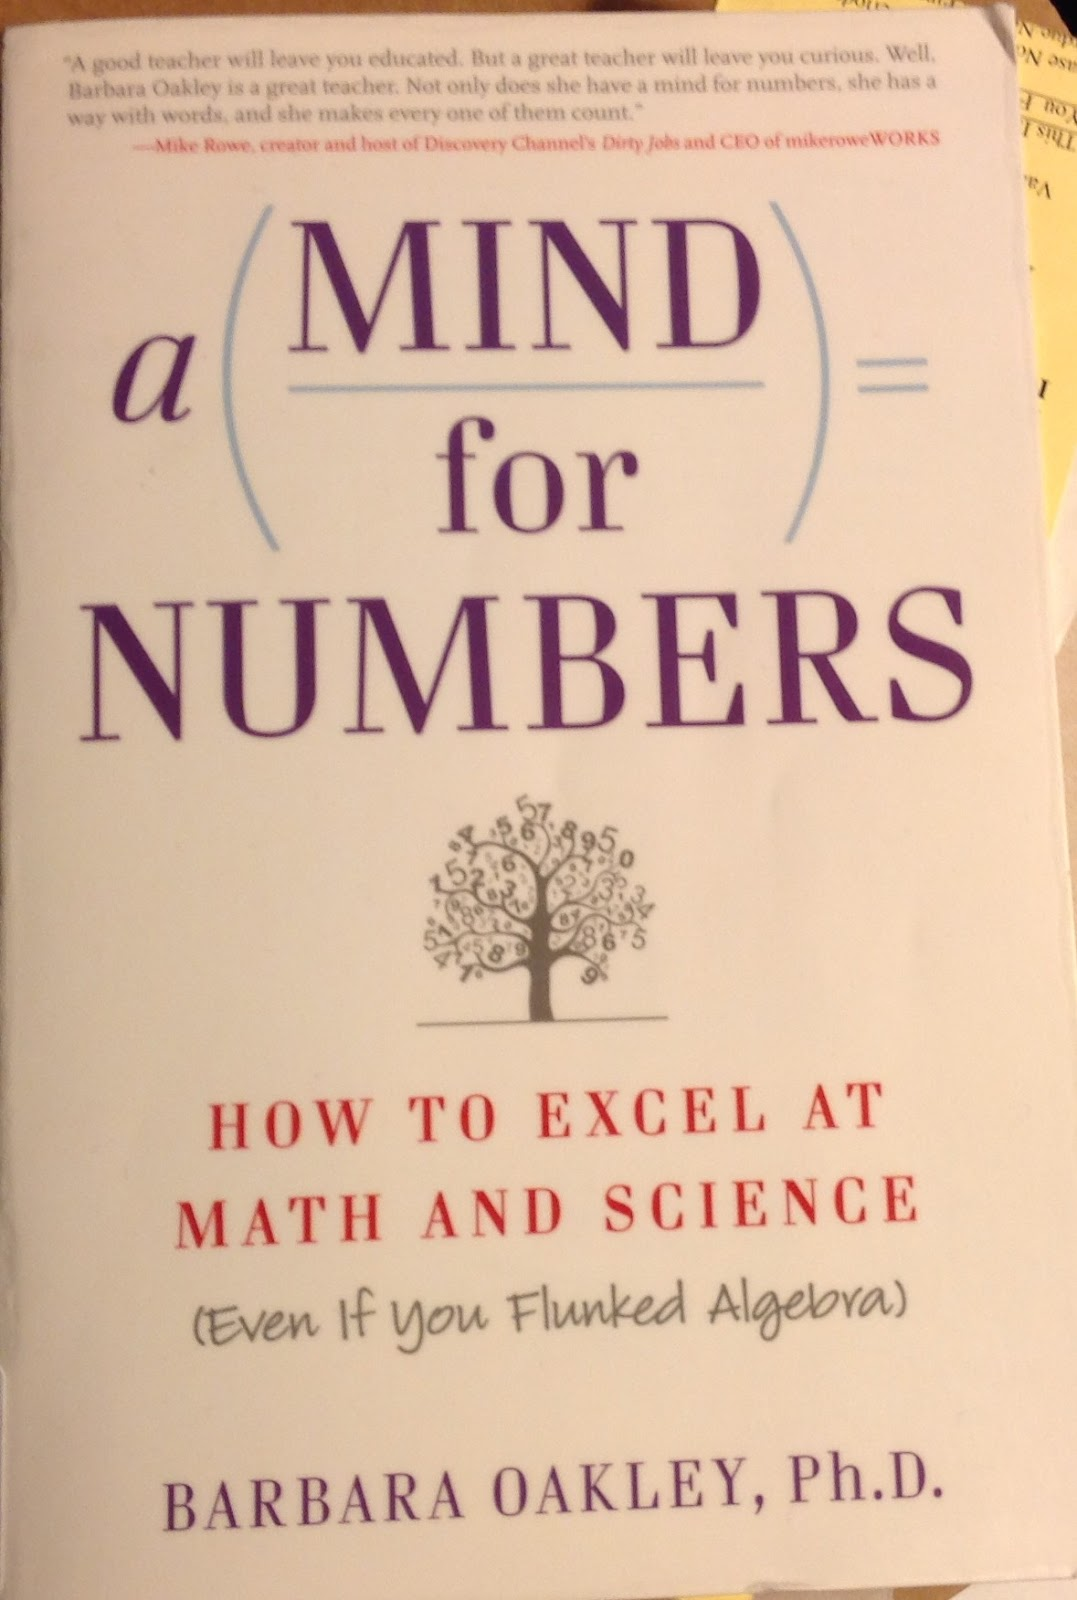 a mind for numbers how to excel at math and science even if you flunked algebra english edition jovuqdh